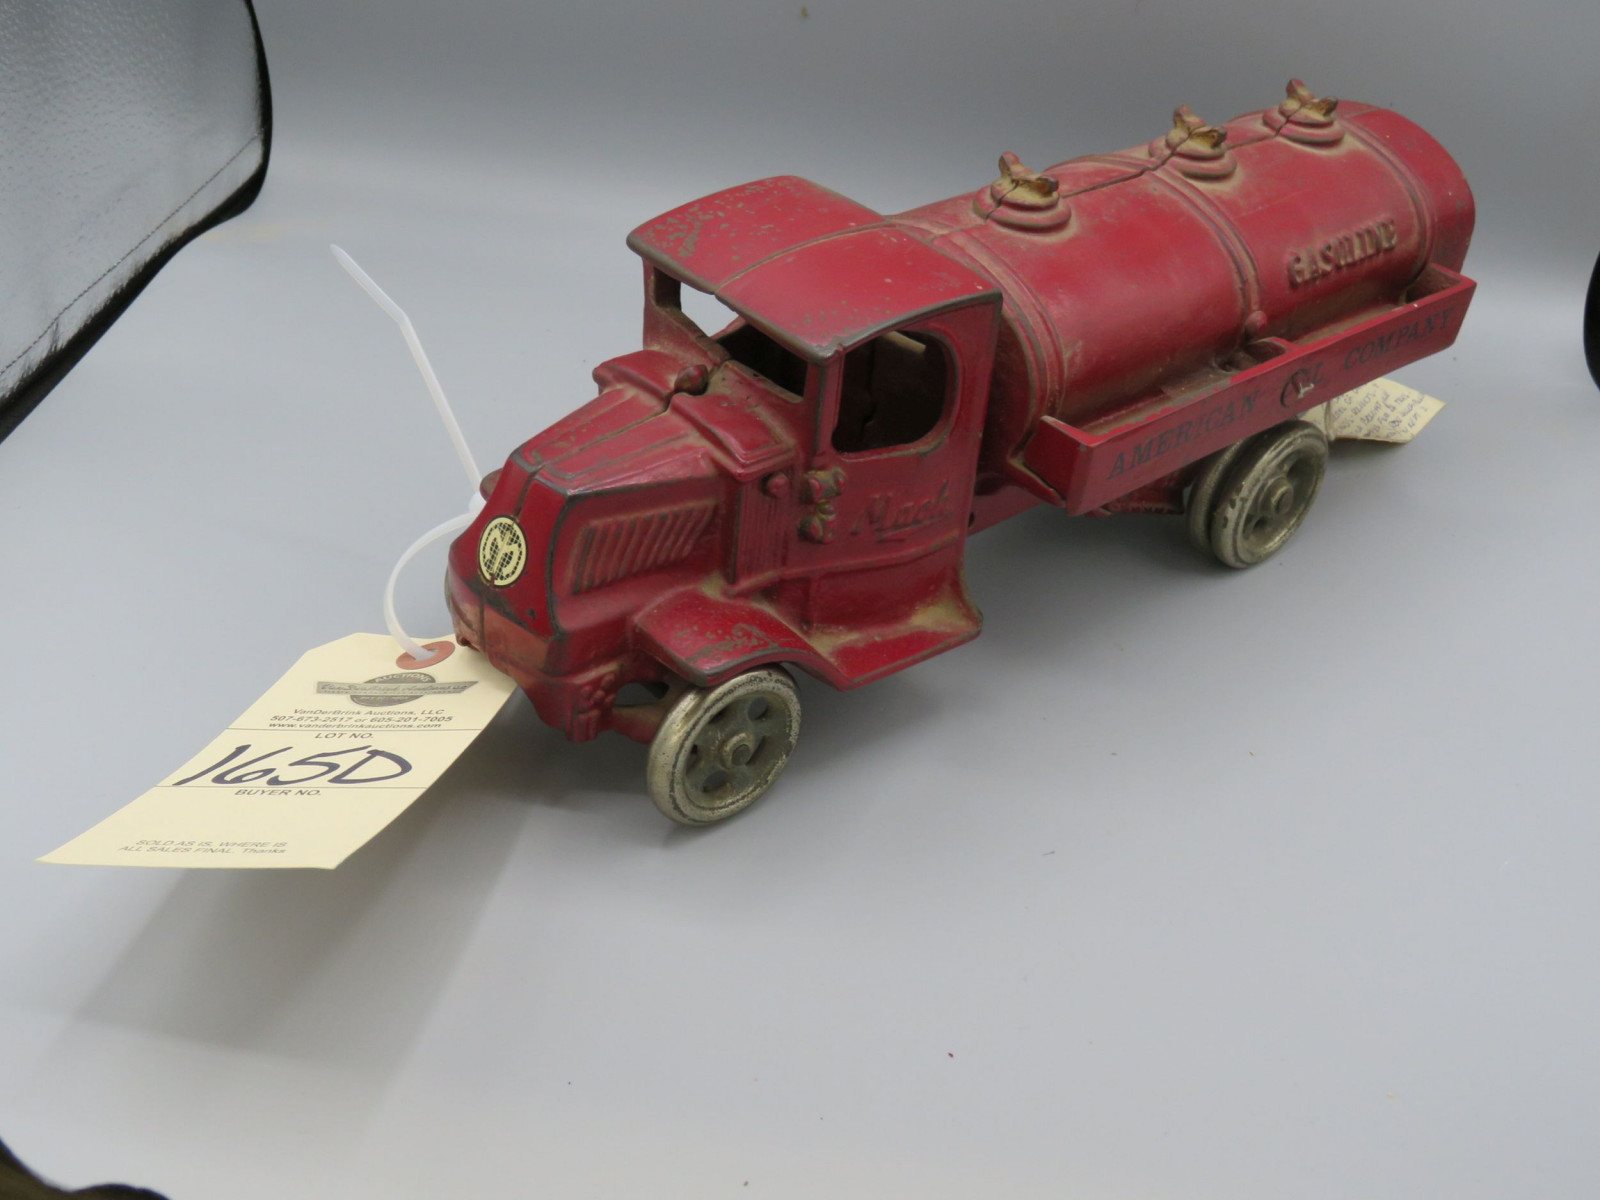 Cast Iron Mack Truck Tanker @1925 Approx. 13 1/4 inches poss. Arcade - Image 2